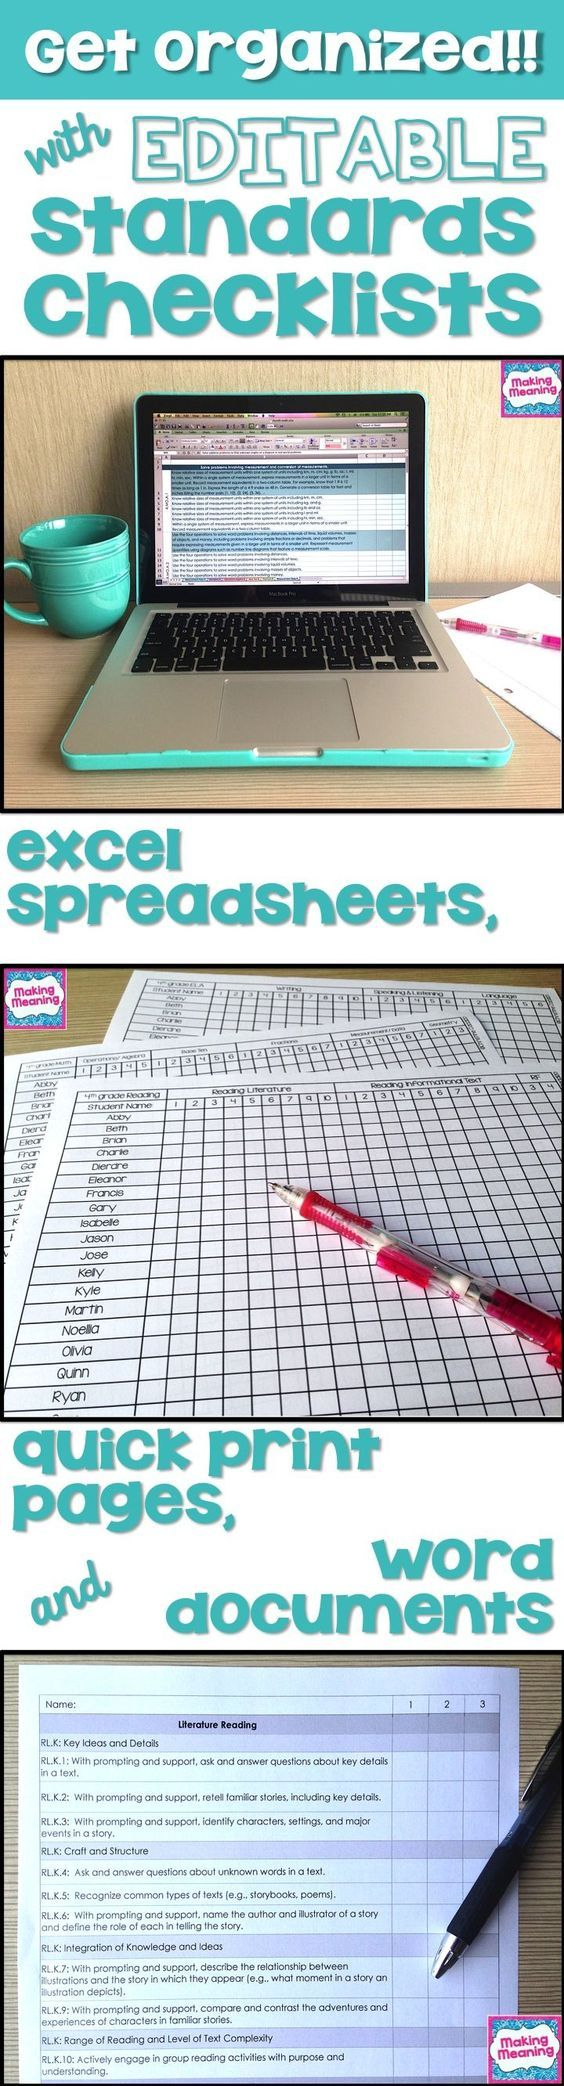 Use editable standards checklists to get and STAY organized. Use Excel or Word, or just quickly add students' names and hit print. Digital and paper- the best of both worlds! $: